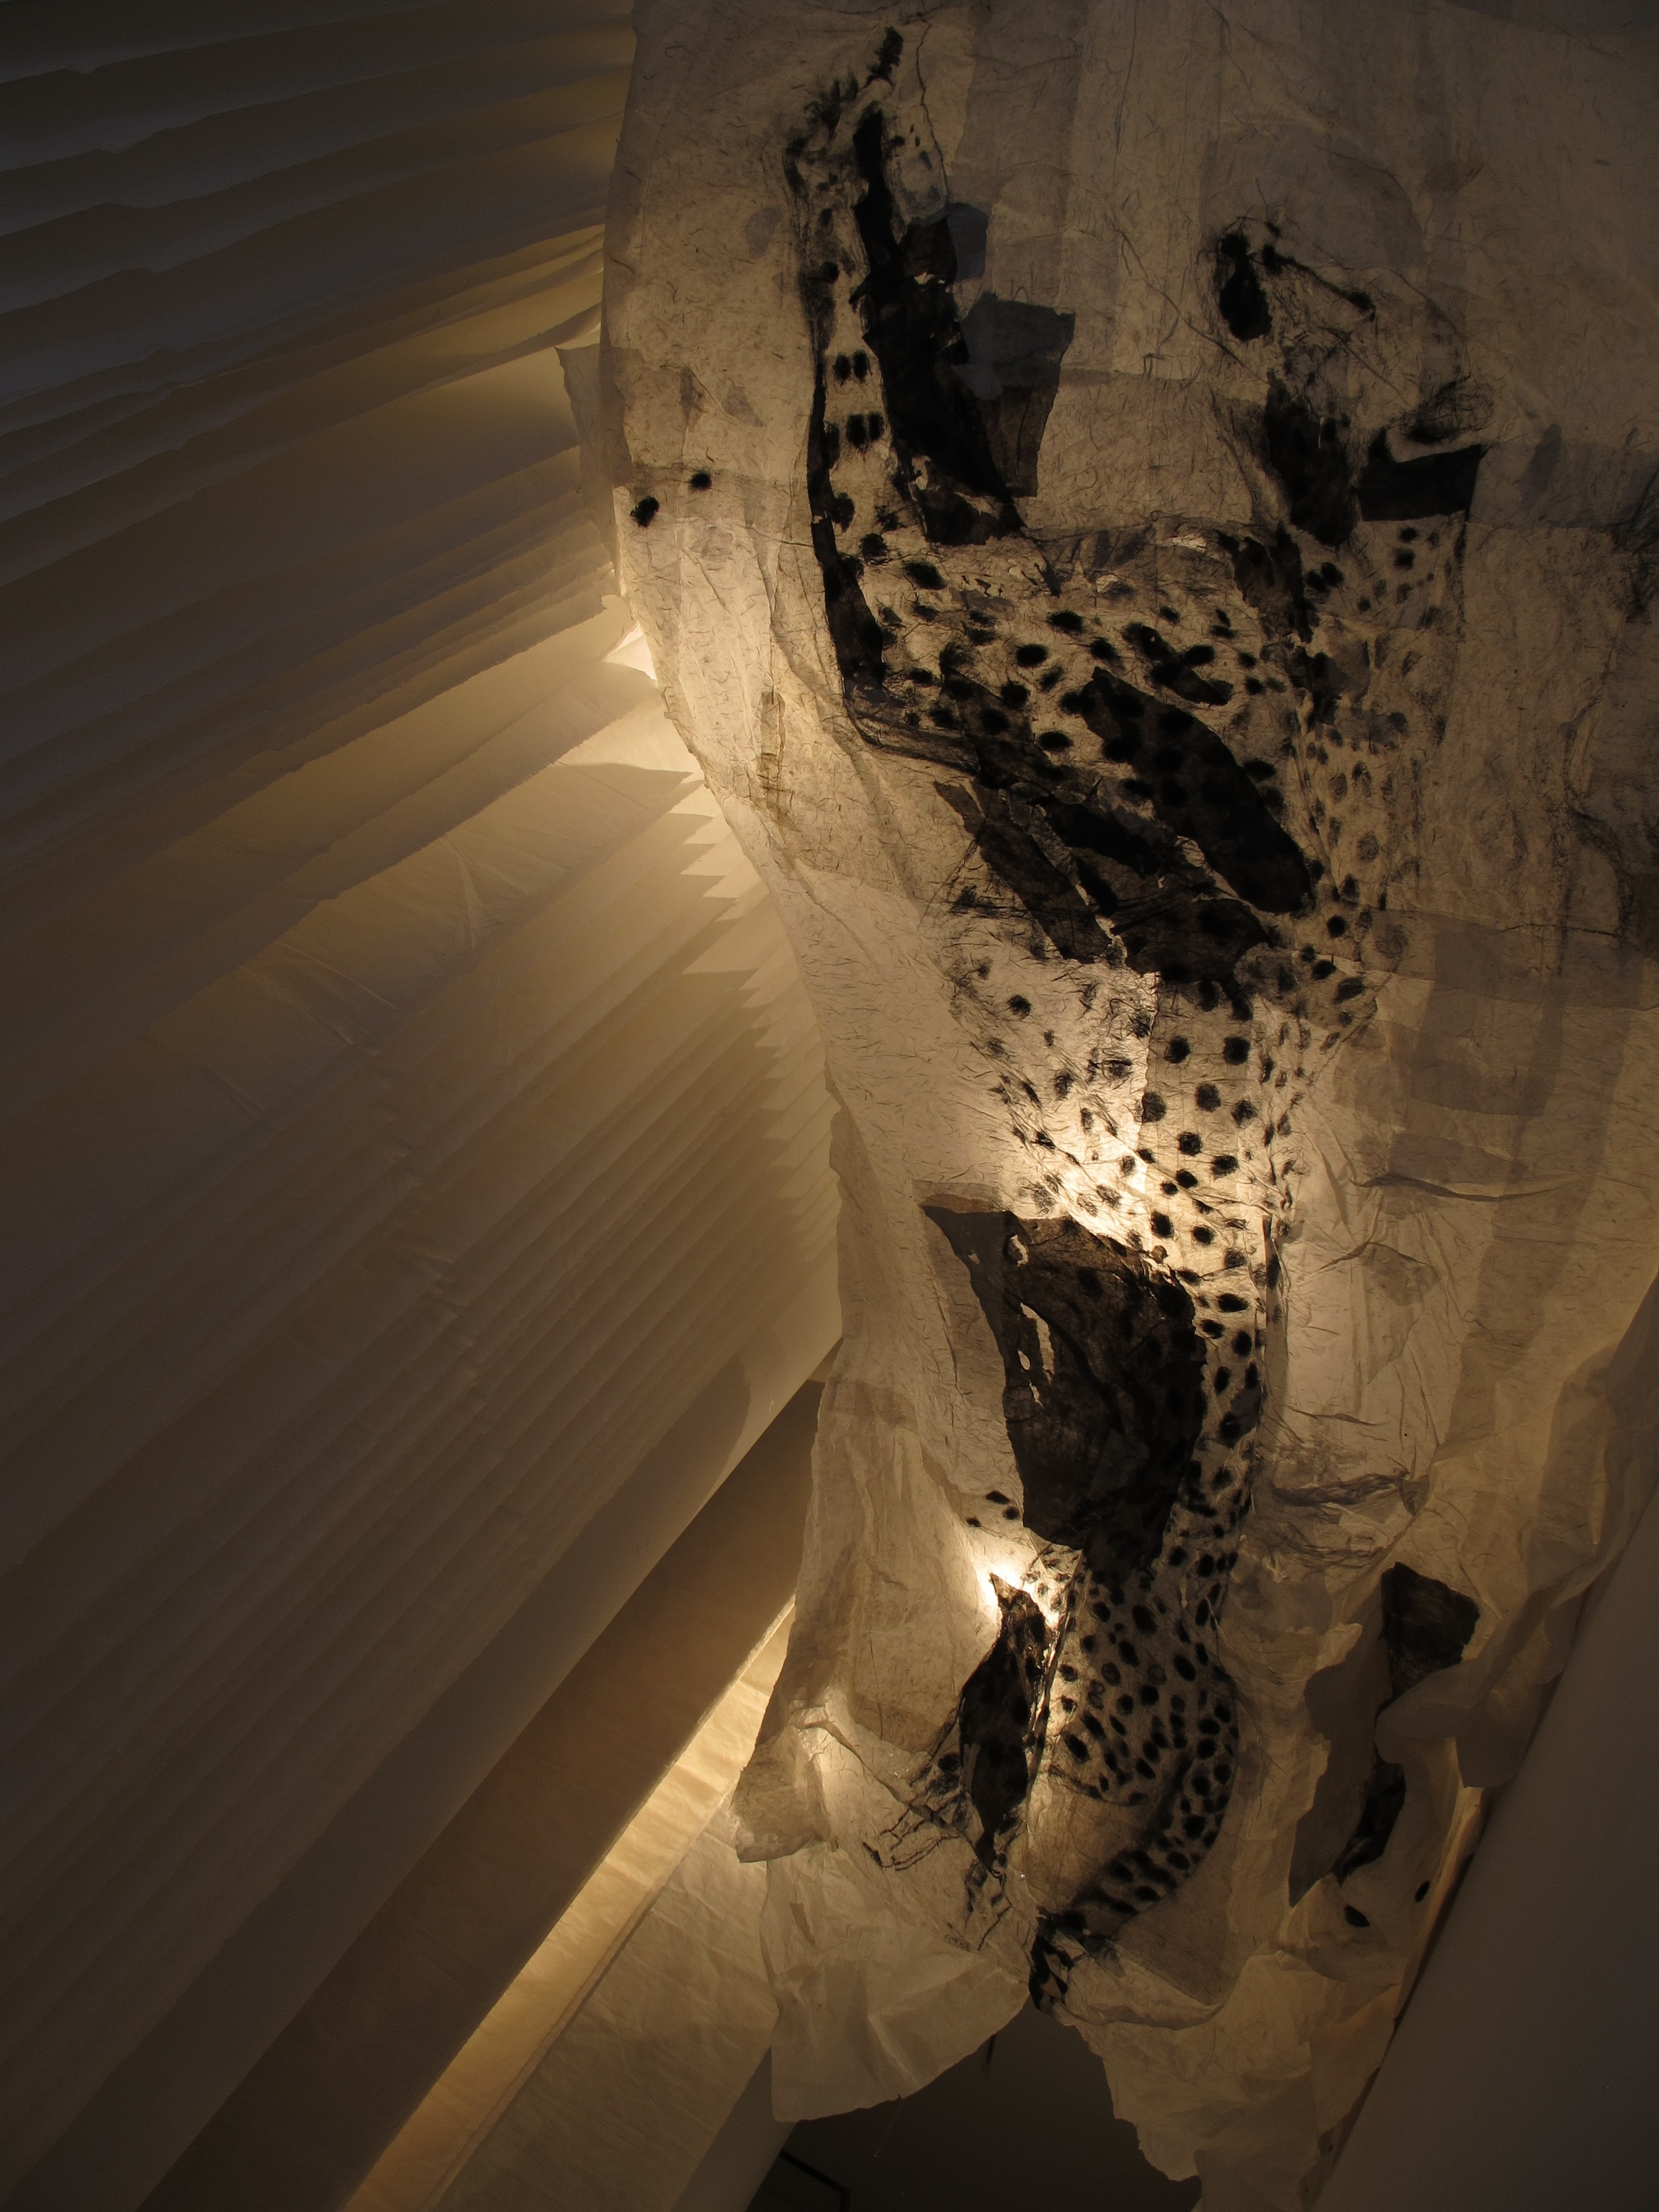 Exhale 呼, 2014 Ink and Xuan paper installation 水墨宣纸装置 207 x 106 x 168 in.